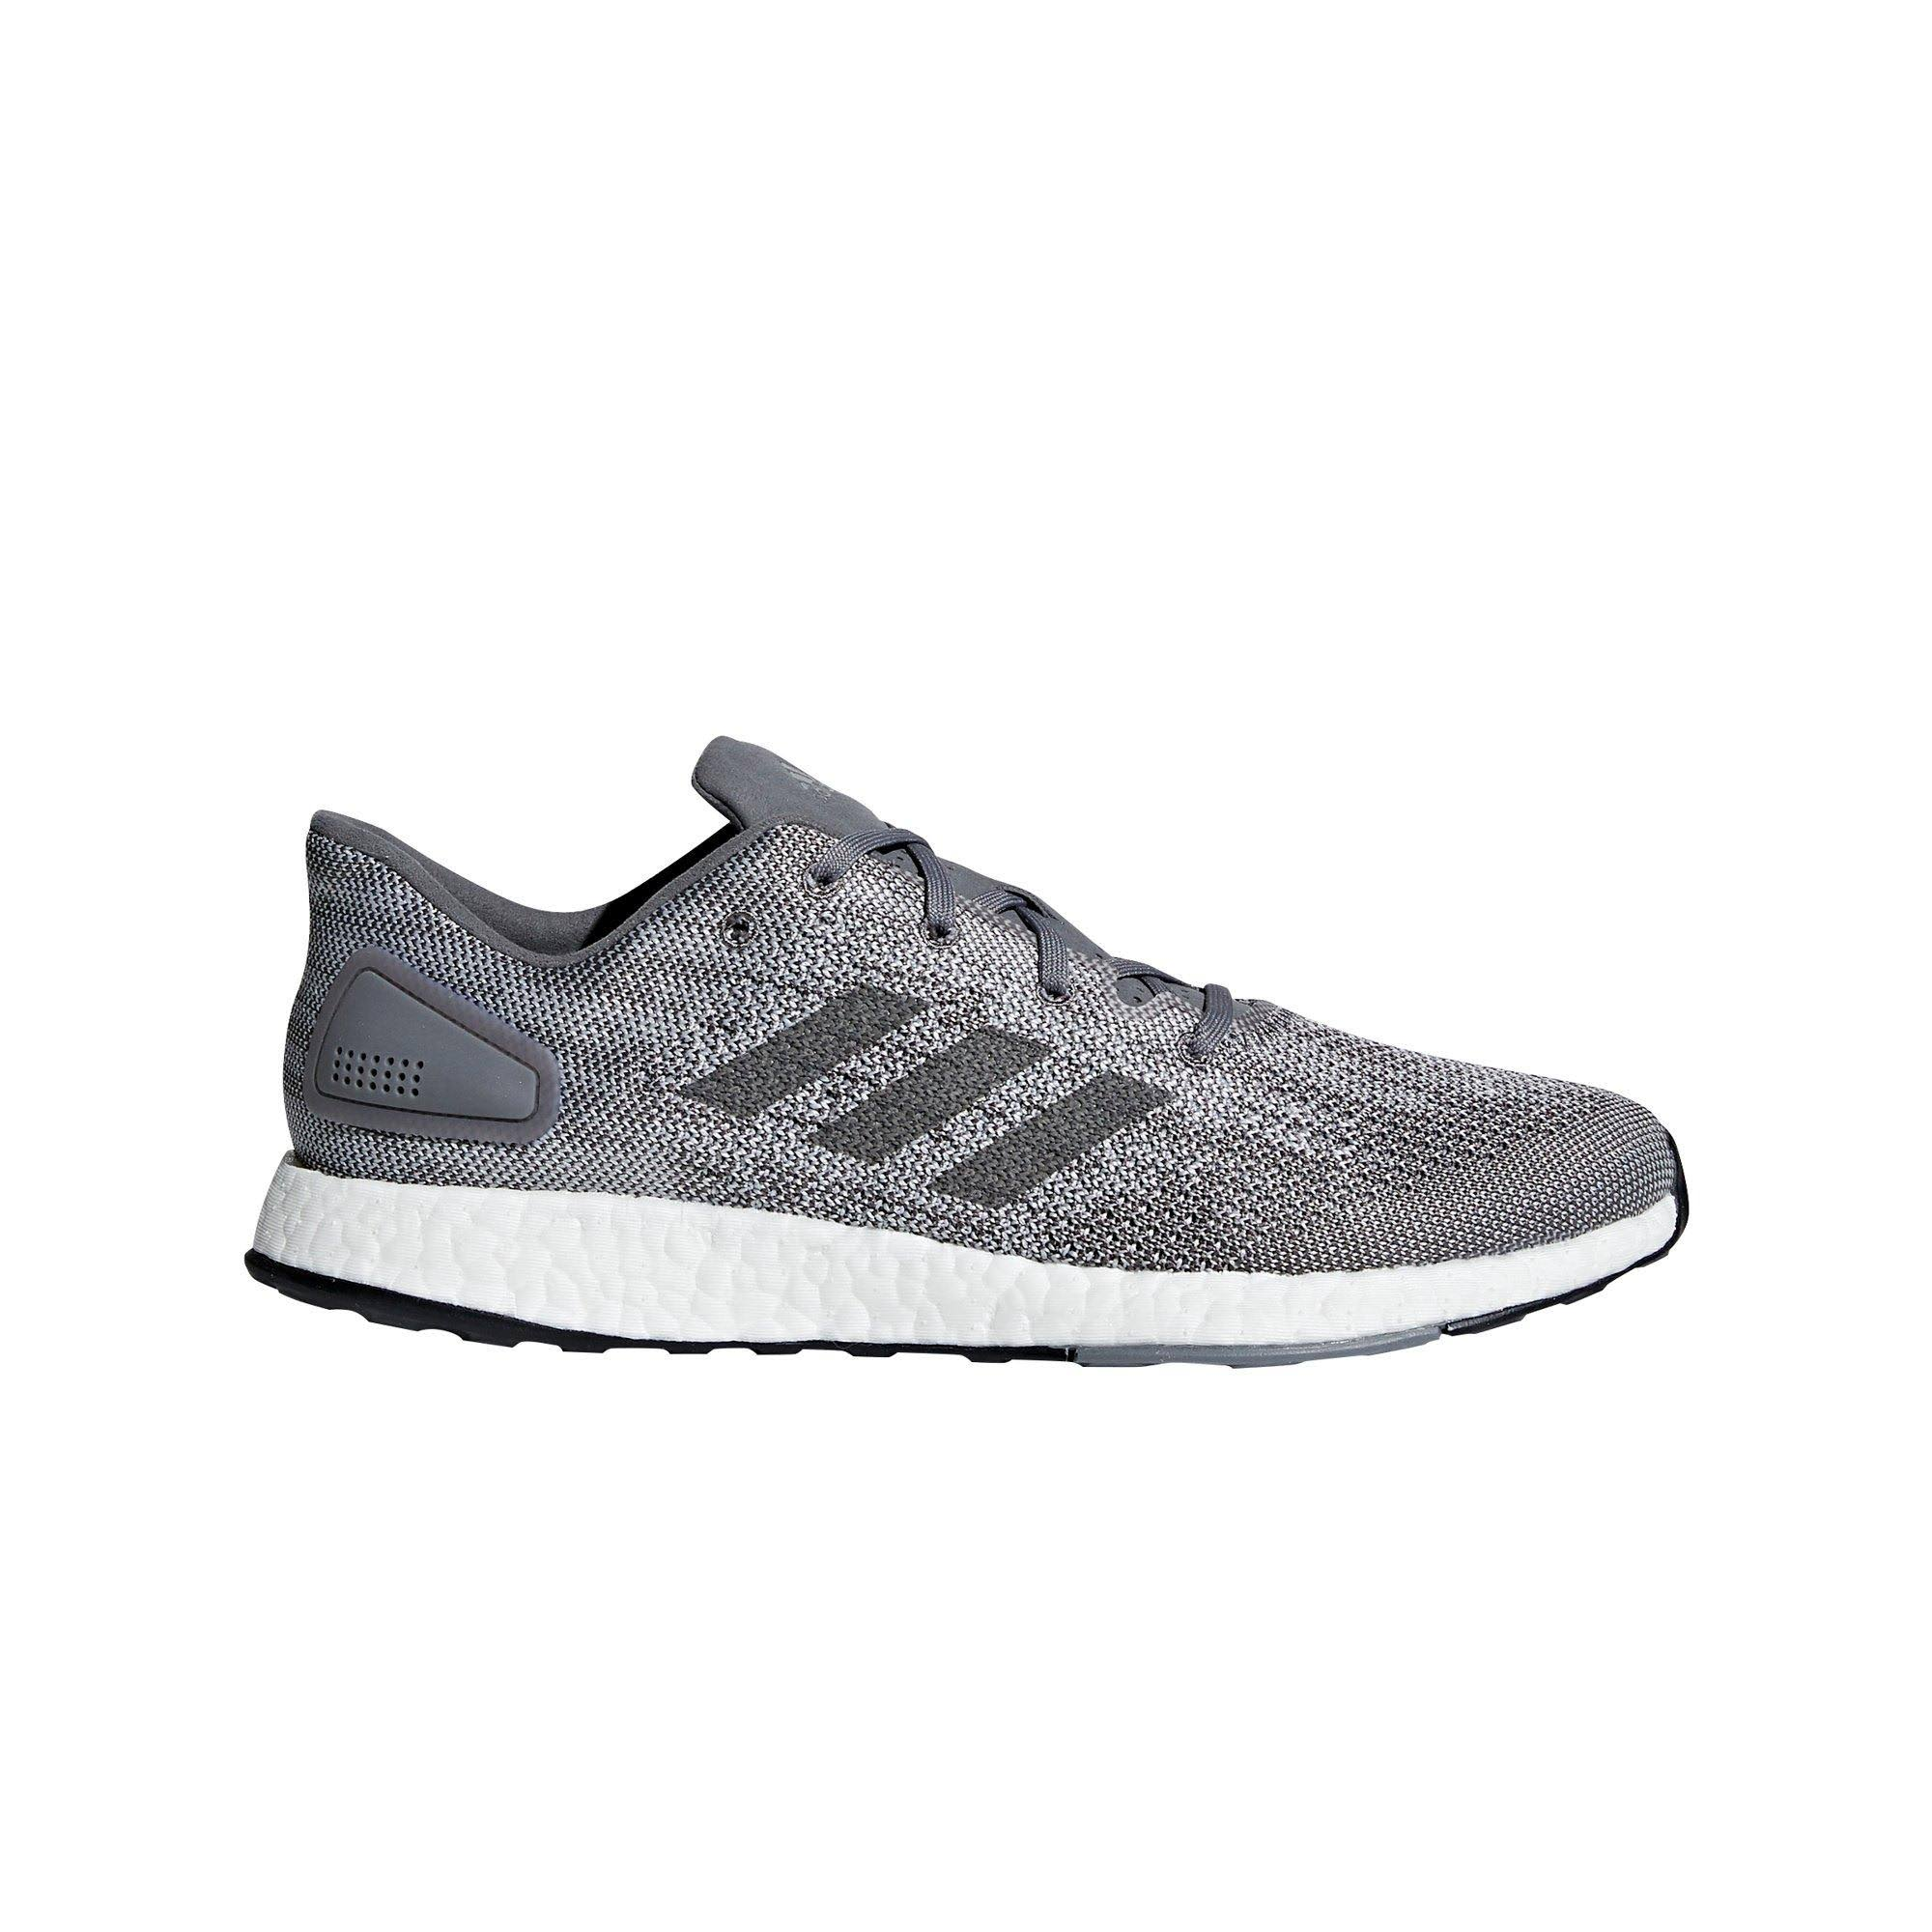 Adidas Pure Dpr Running Boost 13 Men's Size Shoe